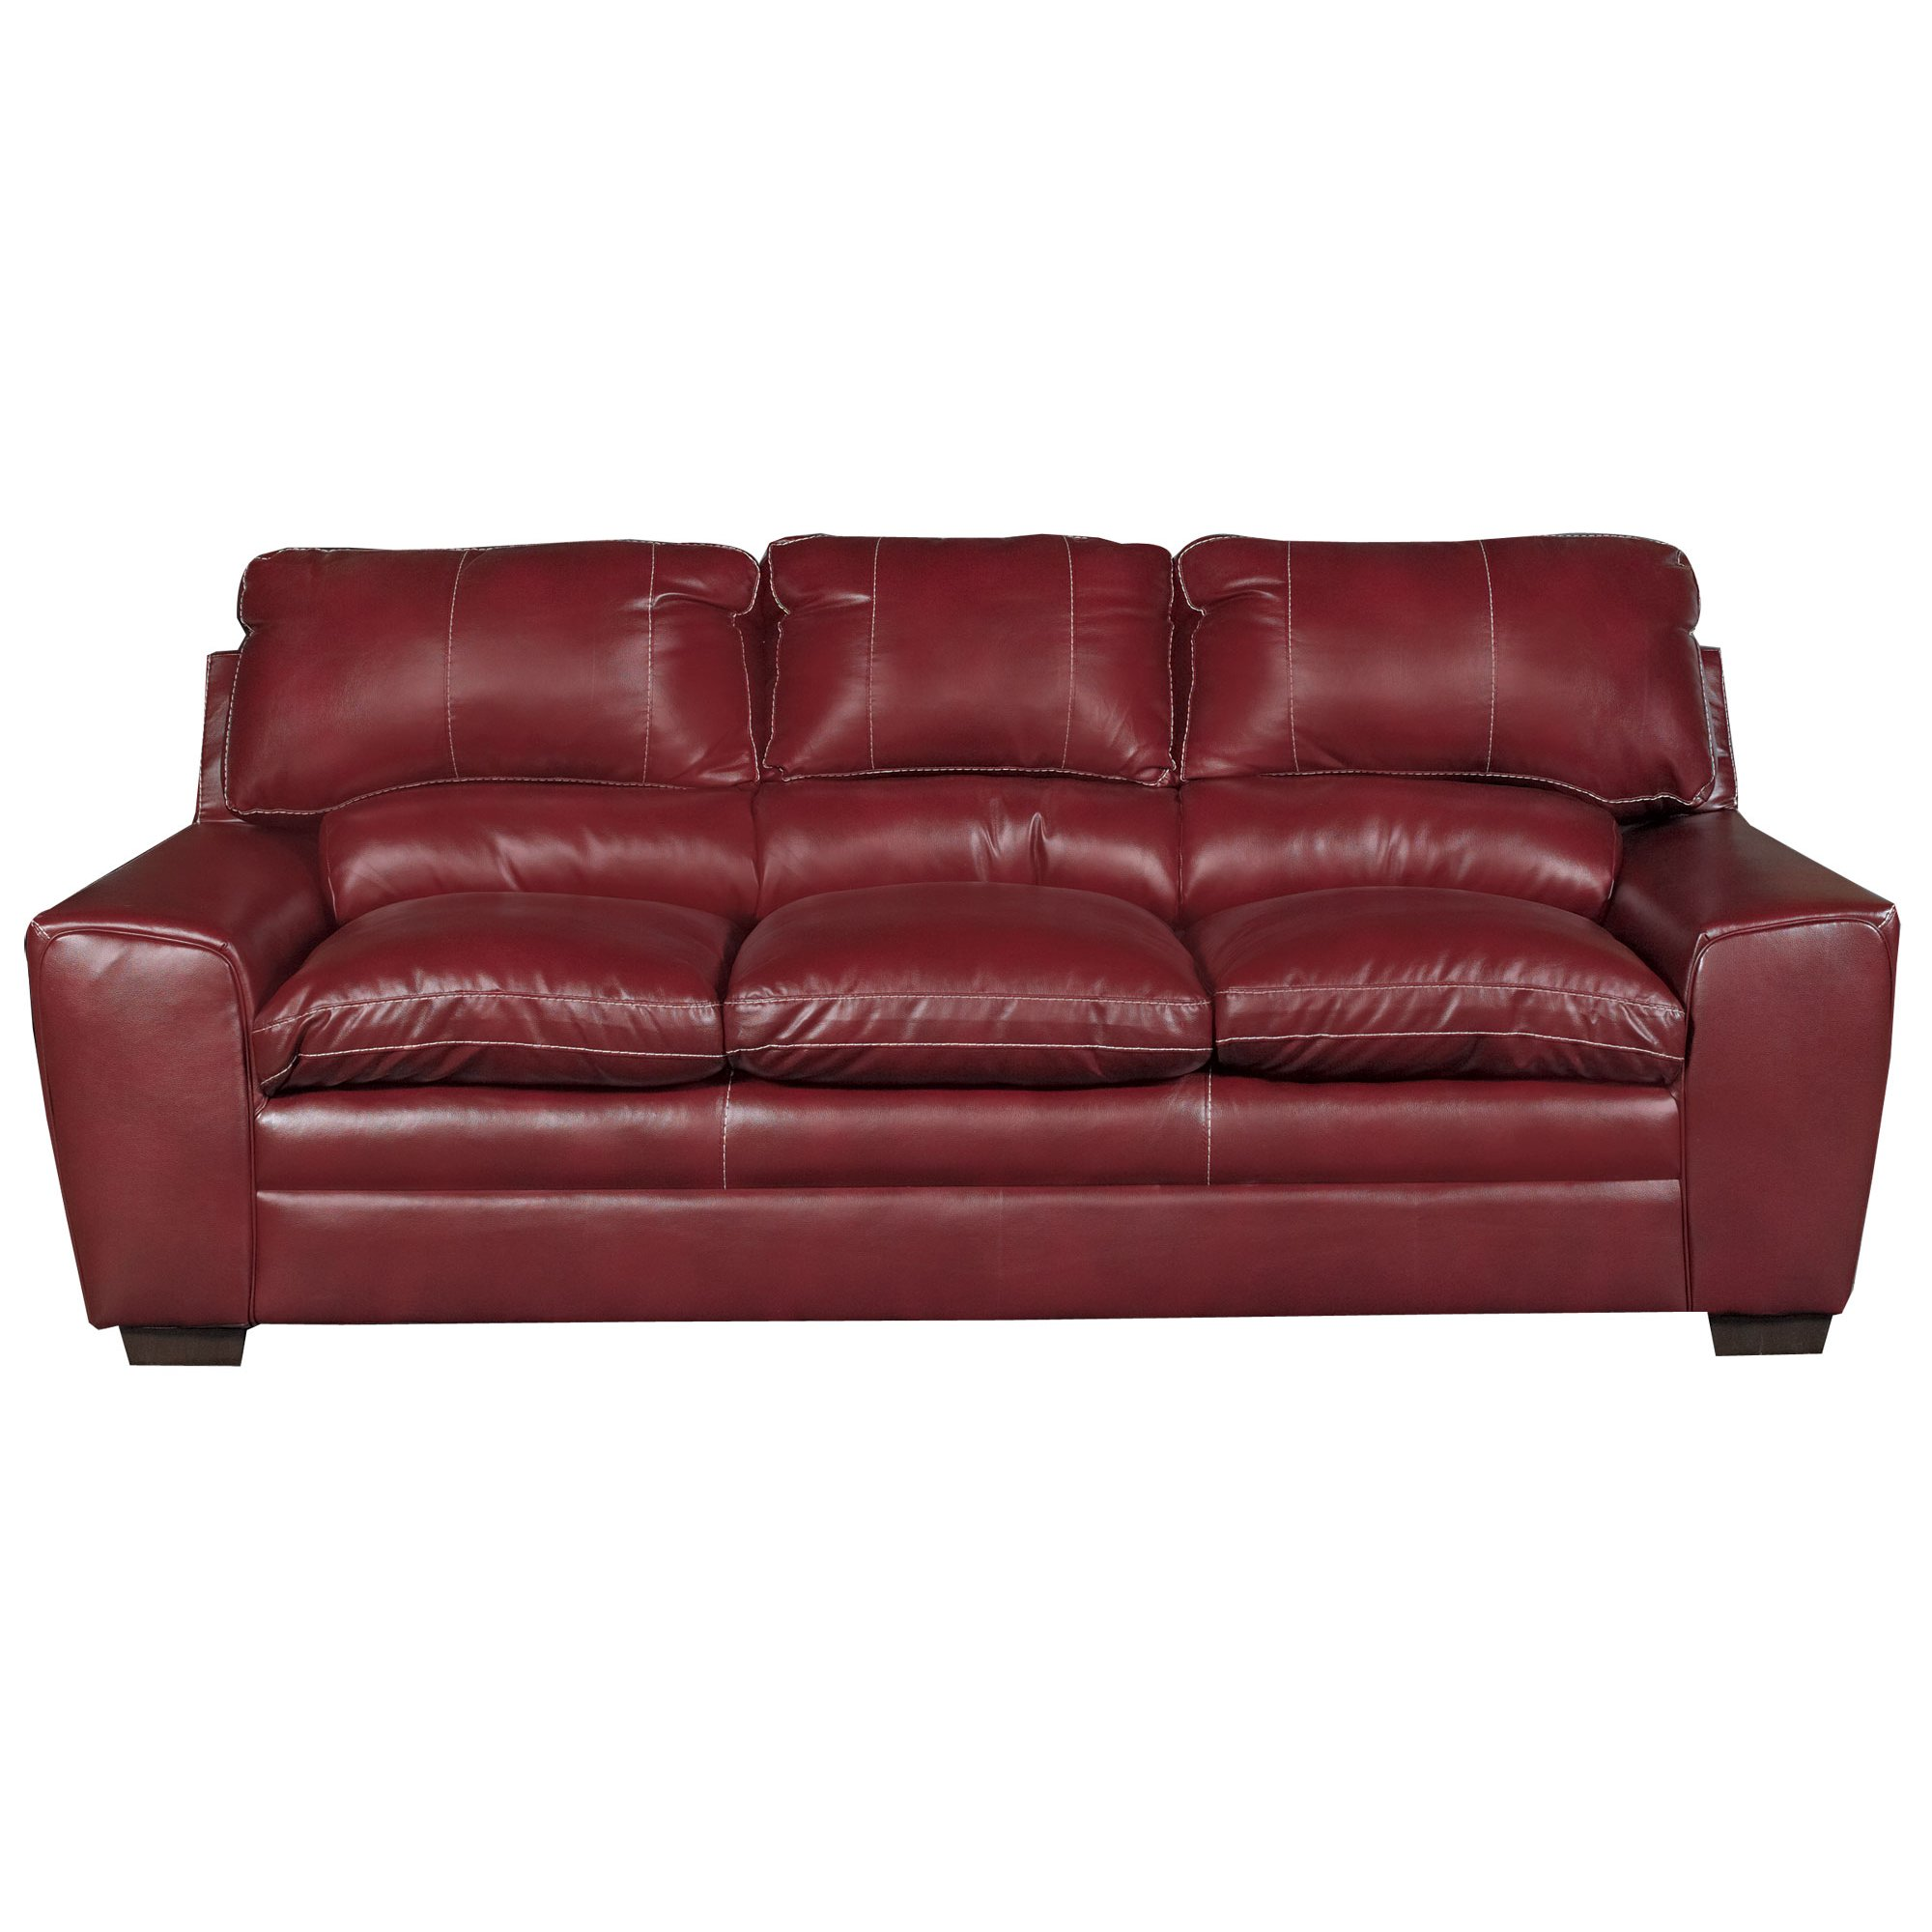 Sofa modern leder  Shop couches and sofas for sale | RC Willey Furniture Store